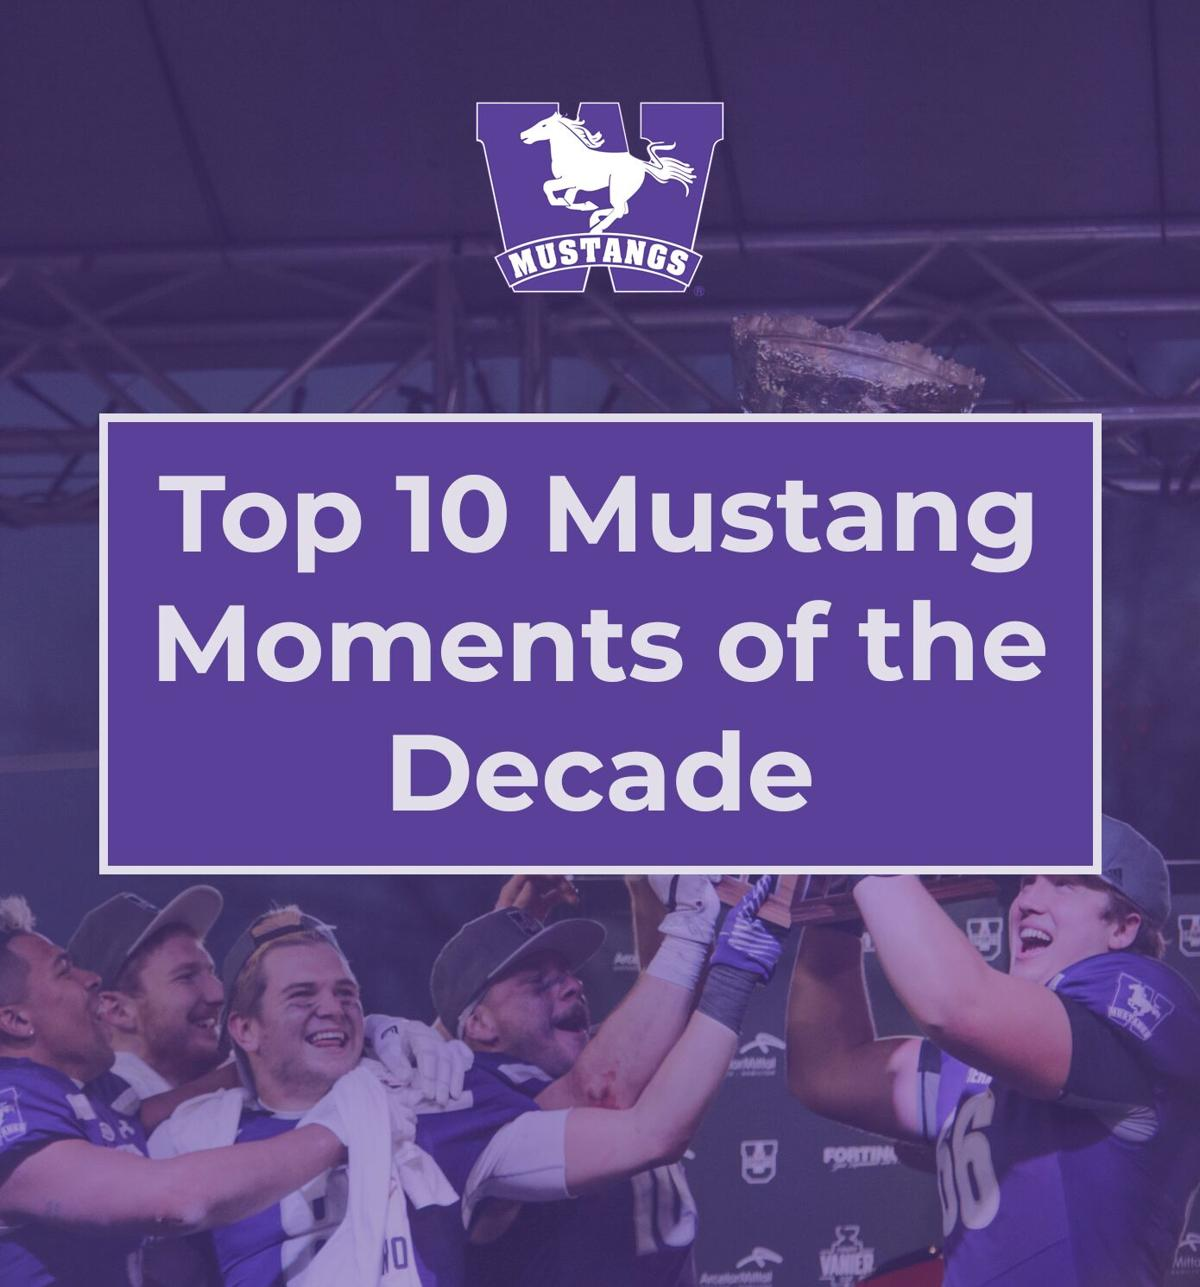 Top ten Mustangs moments of the decade graphic